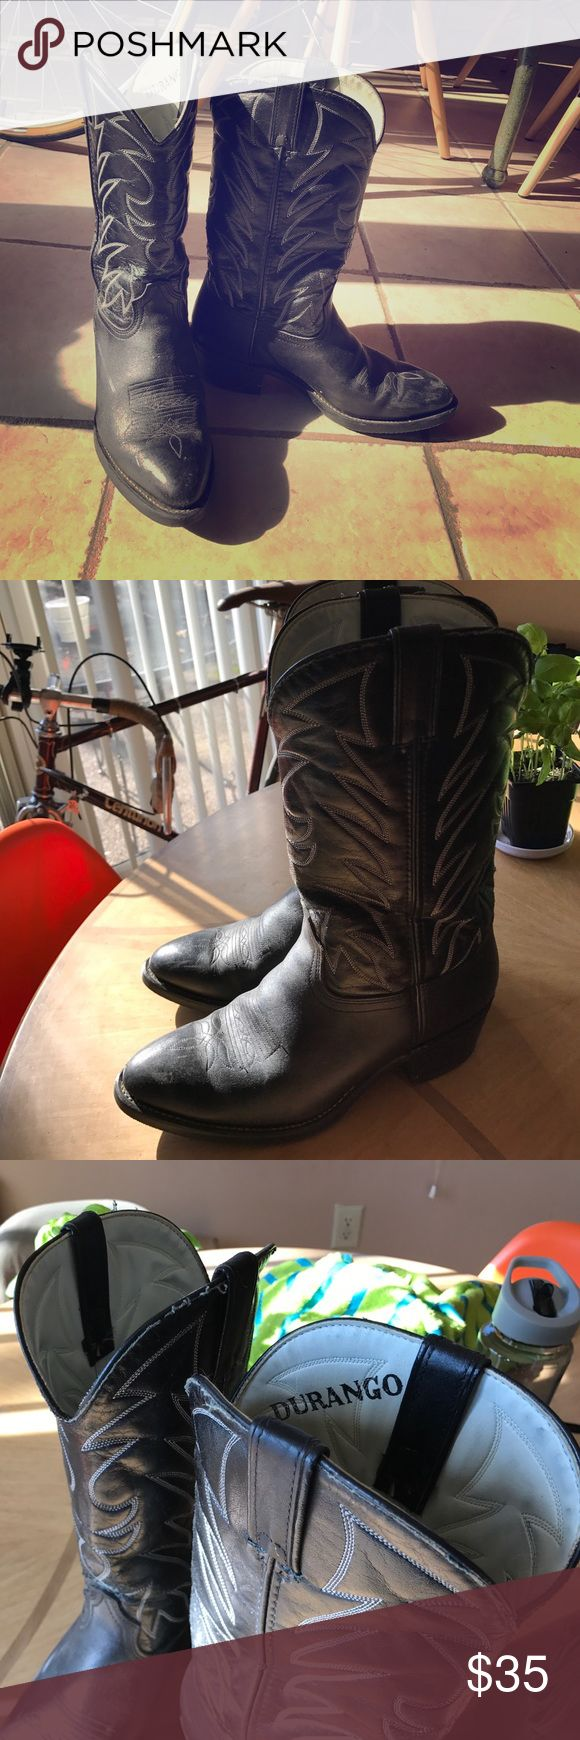 Women's Cowgirl Boots Size 10 Durango Cowgirl Boots, Size 10, Color:Black with White detail stitching Durango Shoes Heeled Boots